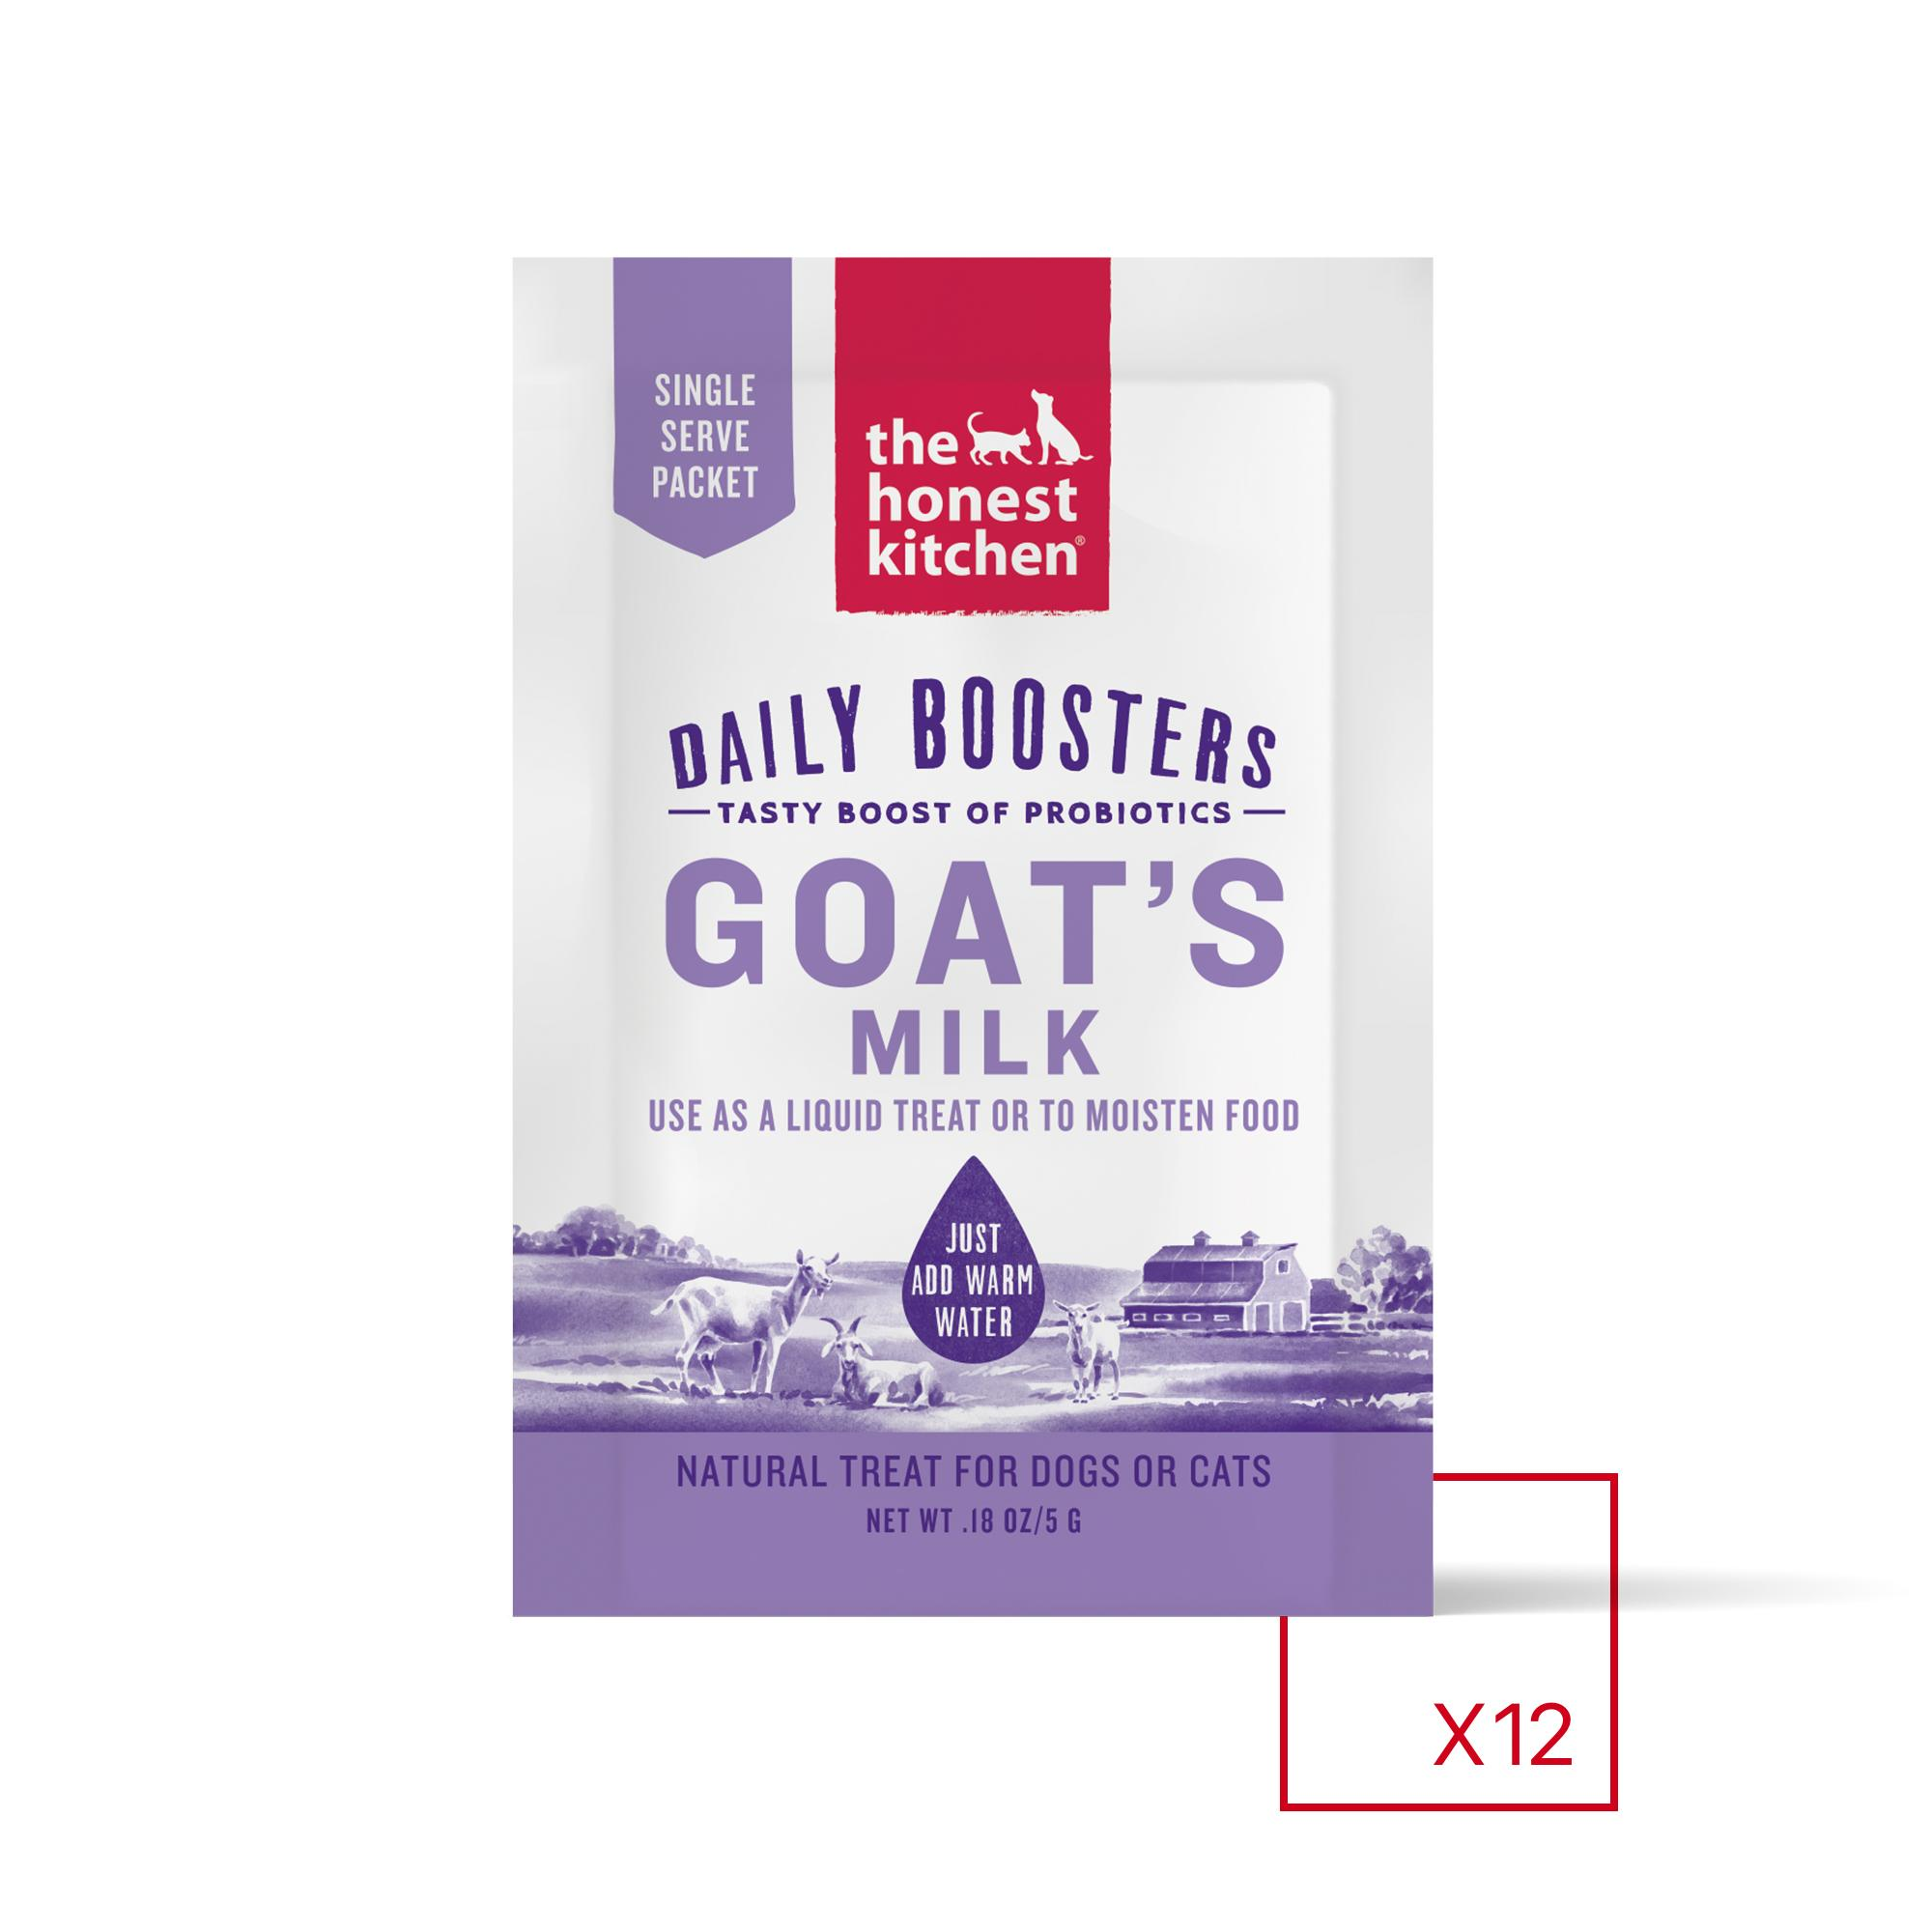 The Honest Kitchen Daily Boosters Instant Goat's Milk with Probiotics for Dogs & Cats, 0.12-oz